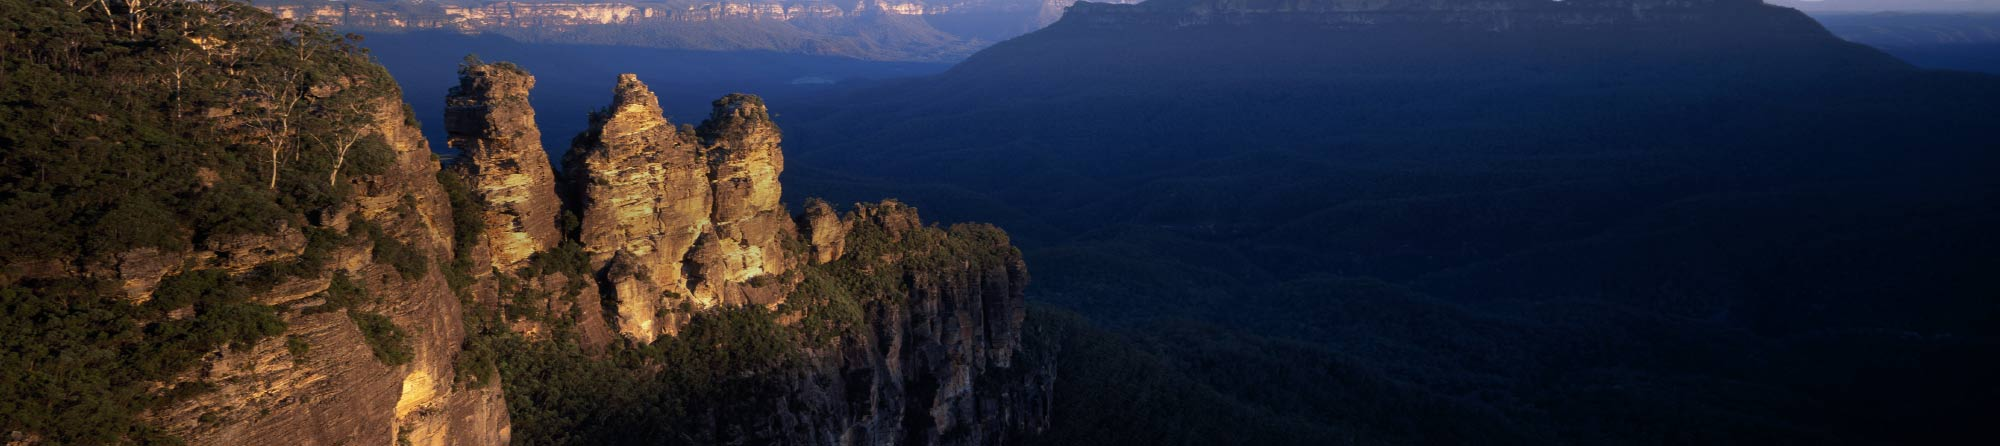 Suslight catching The Three Sisters rock outcrop in The Blue Mountains West of Sydney